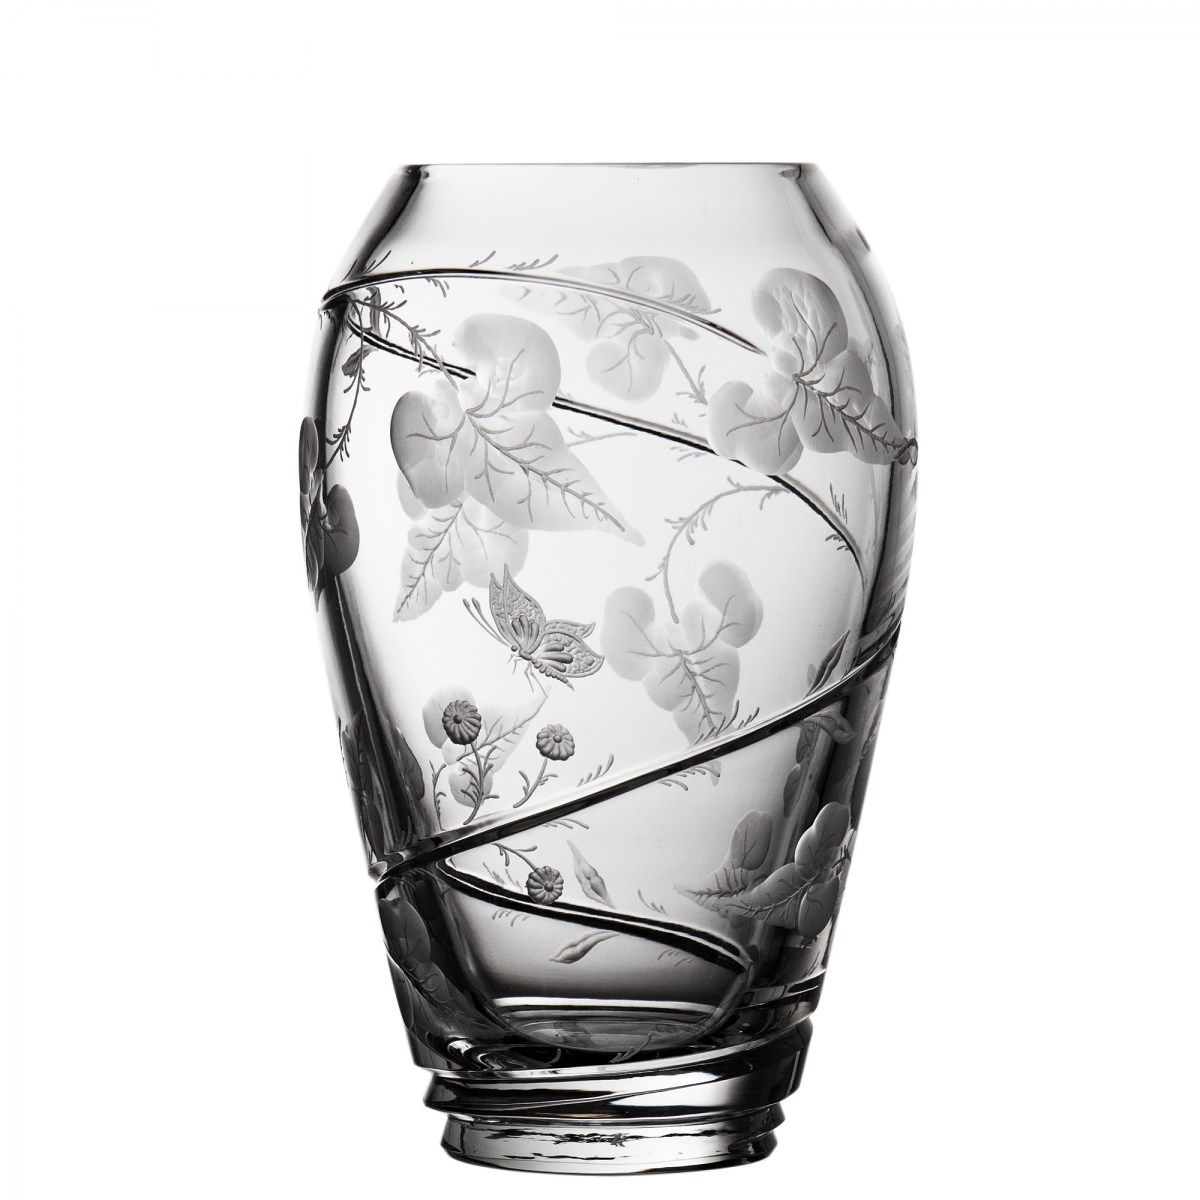 Rain Forest Clear Vase 8' - $ 283 / € 248